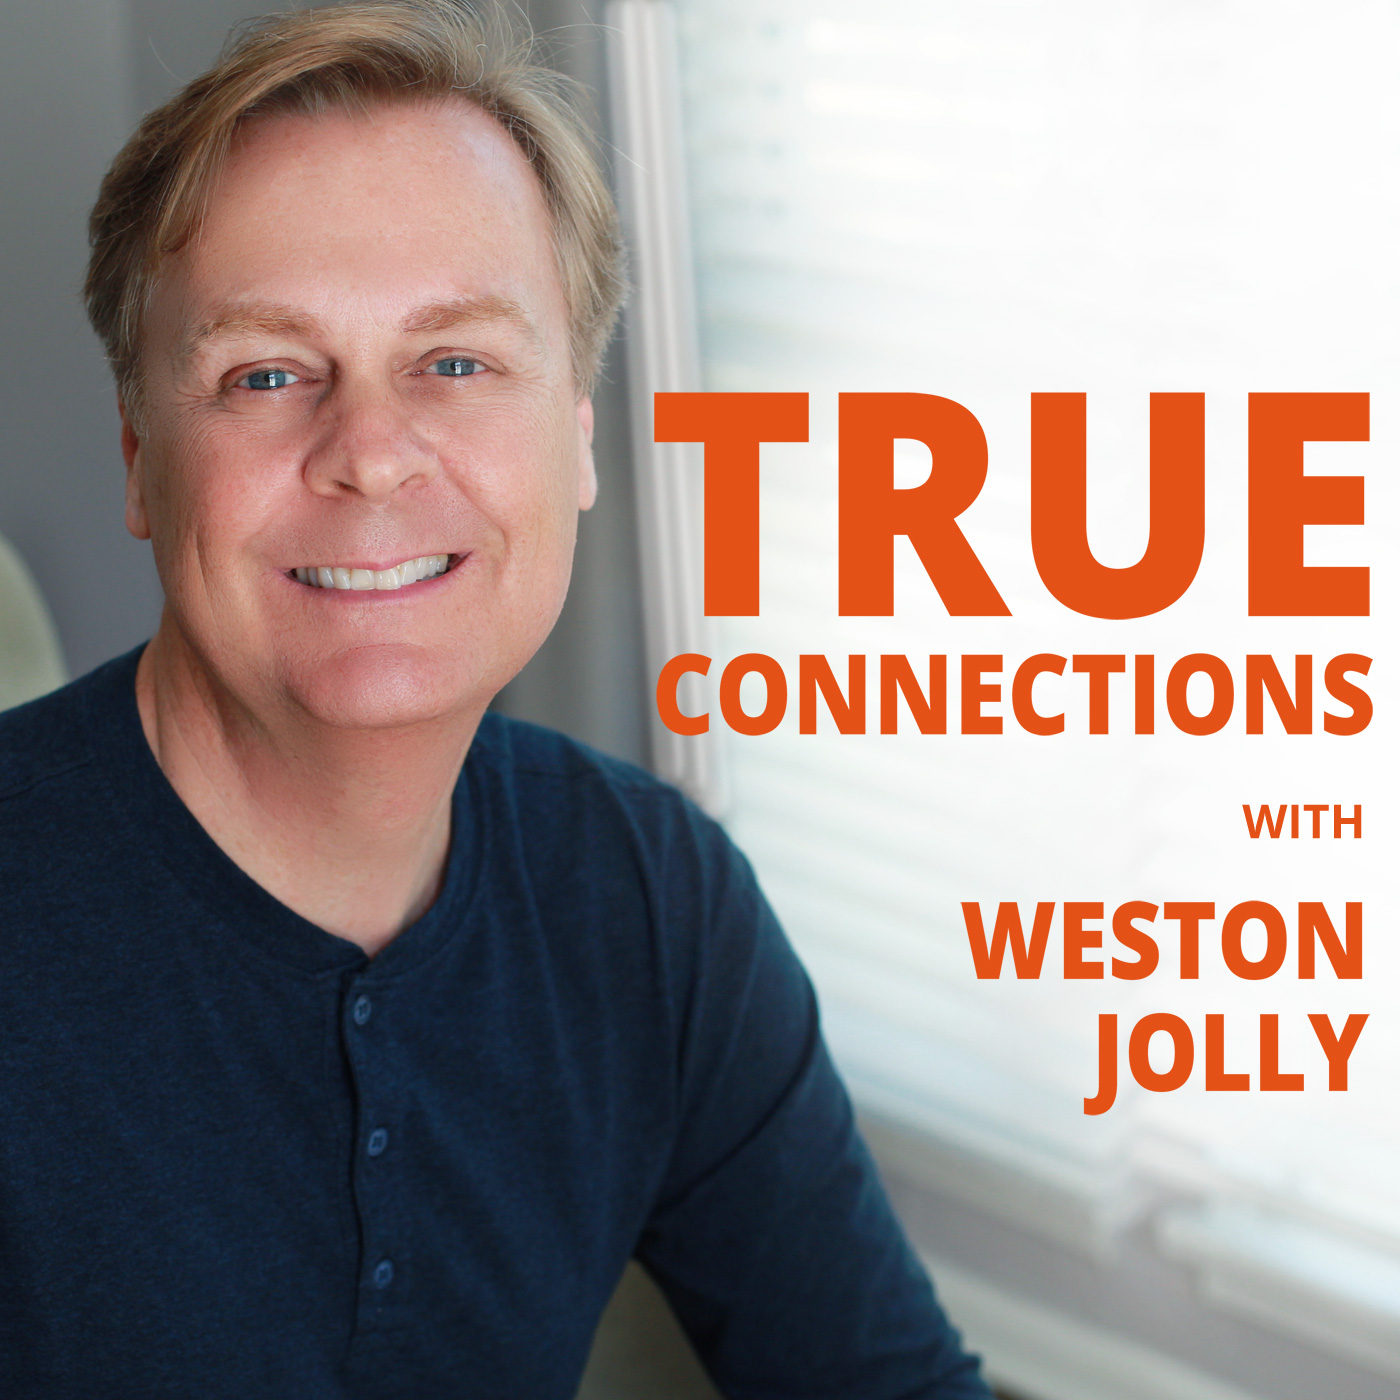 True Connections with Weston Jolly Podcast